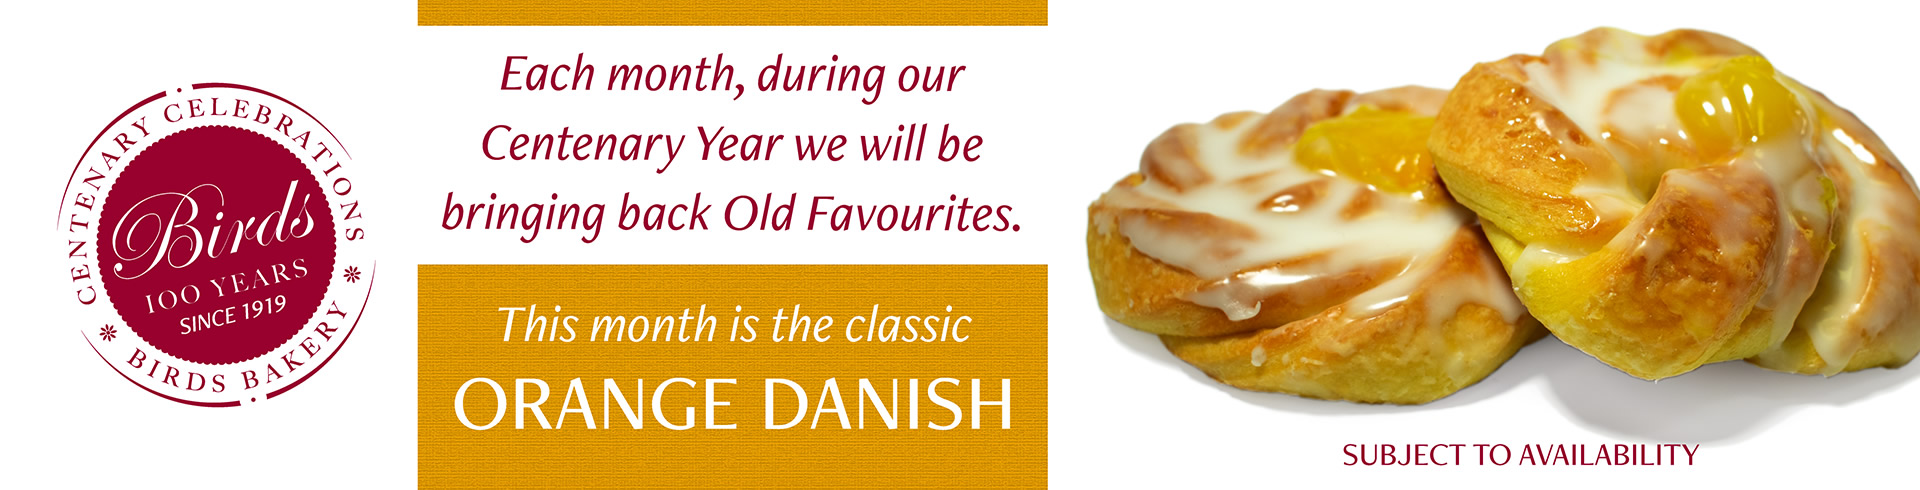 This month sees the return of the Orange Danish